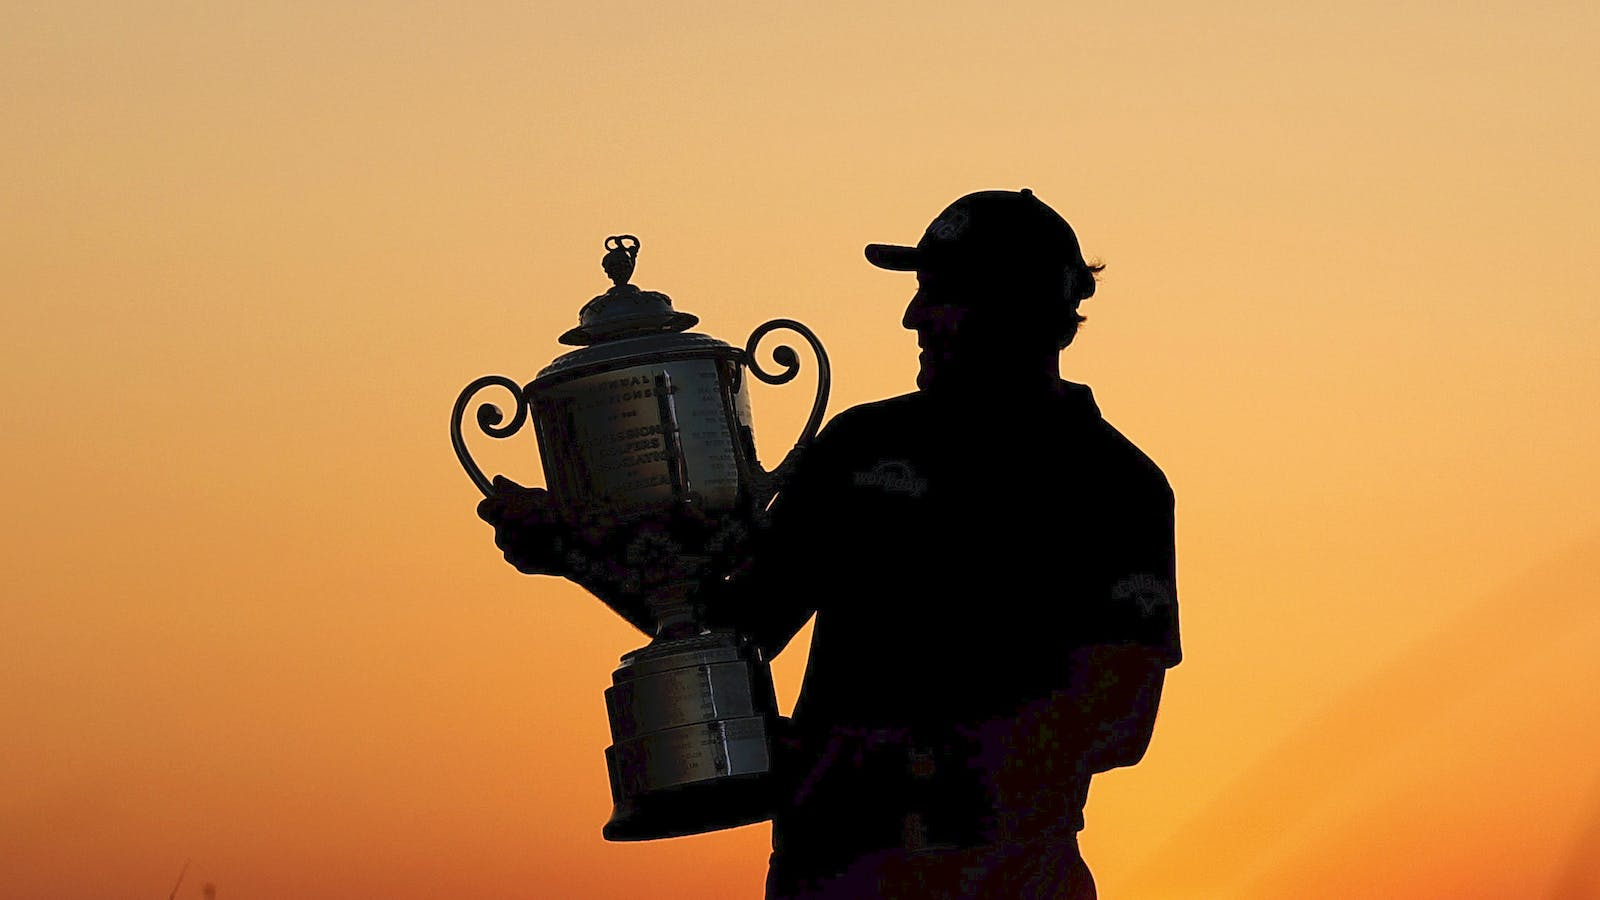 Will Golf Legend Phil Mickelson Raise Another Wine-Filled Trophy at the U.S. Open?